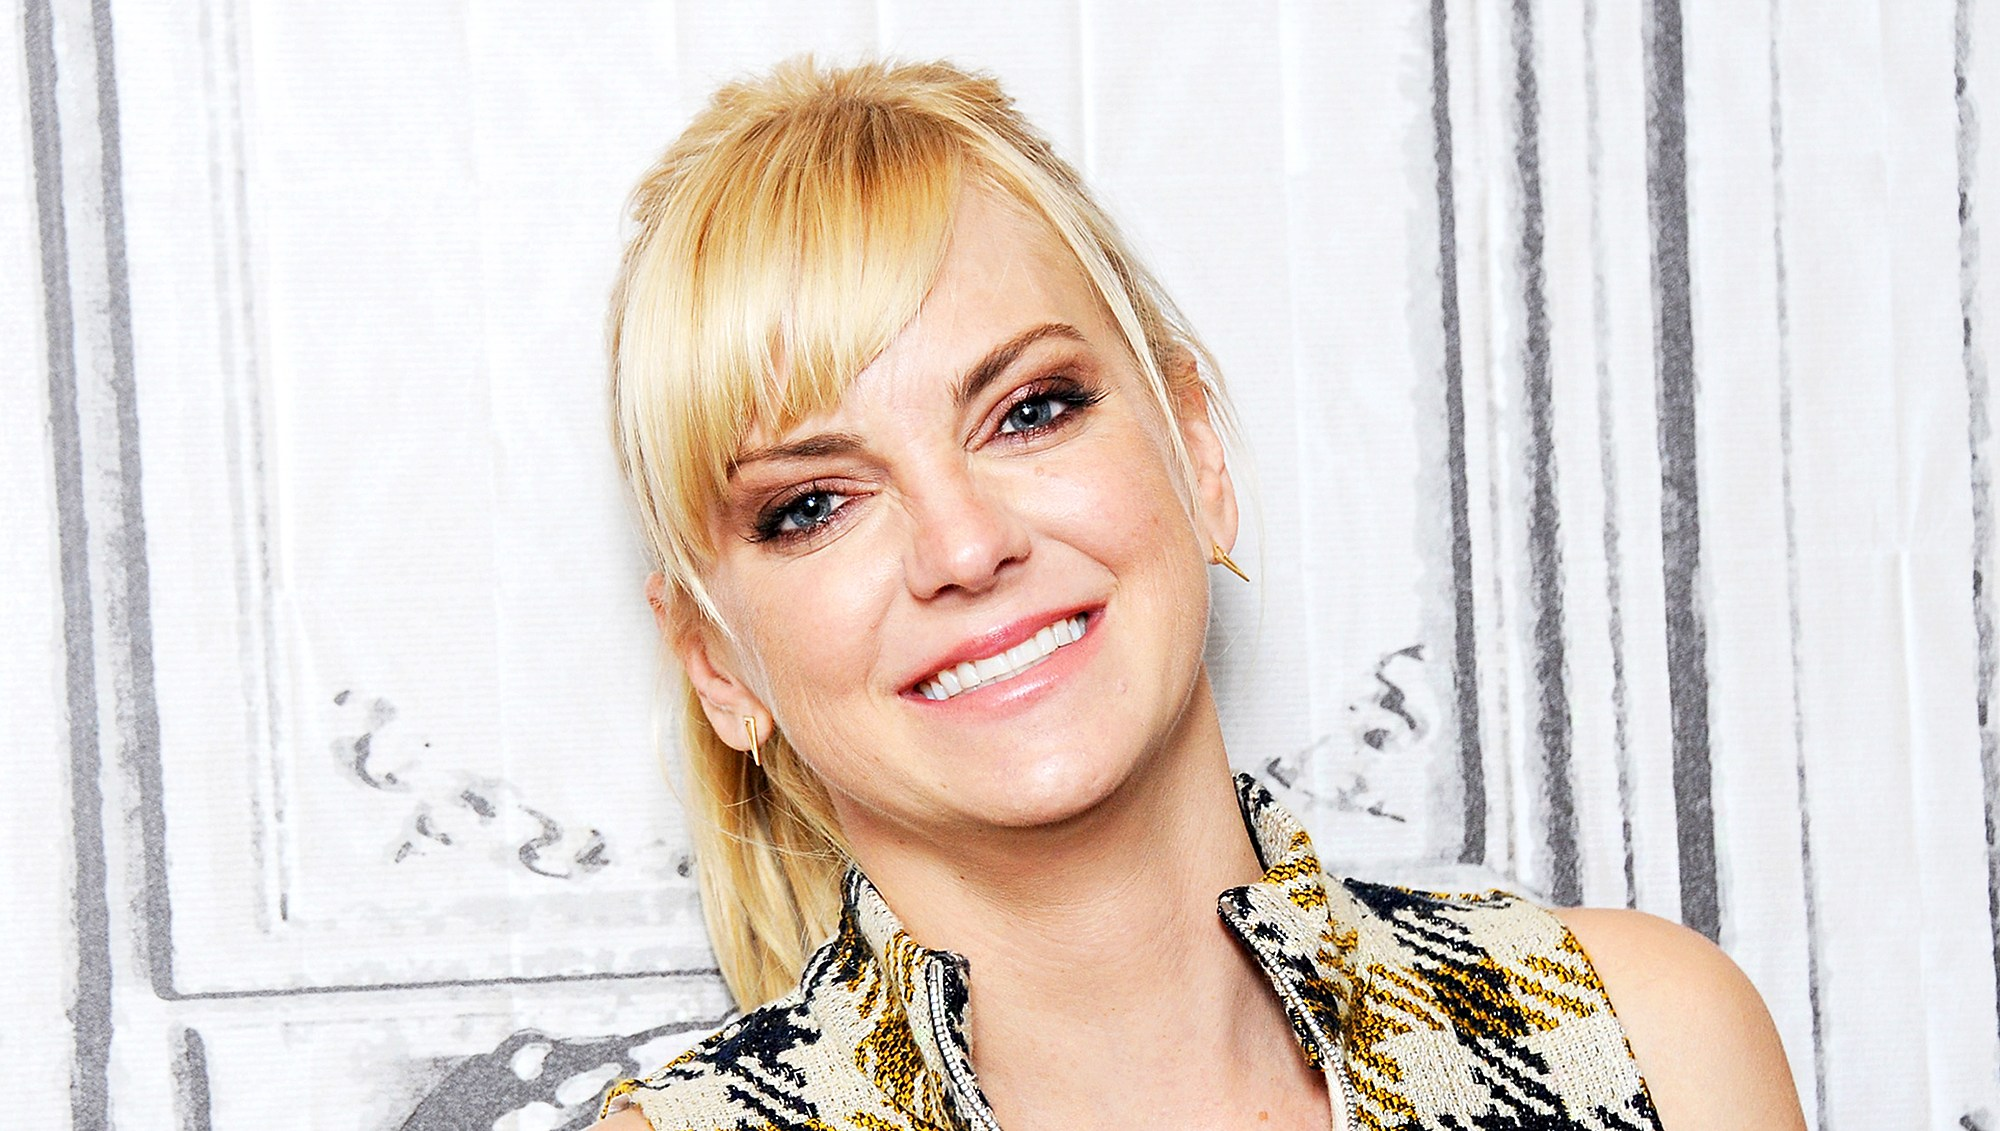 Anna Faris visits Build to discuss her podcast 'Unqualified' in New York City.